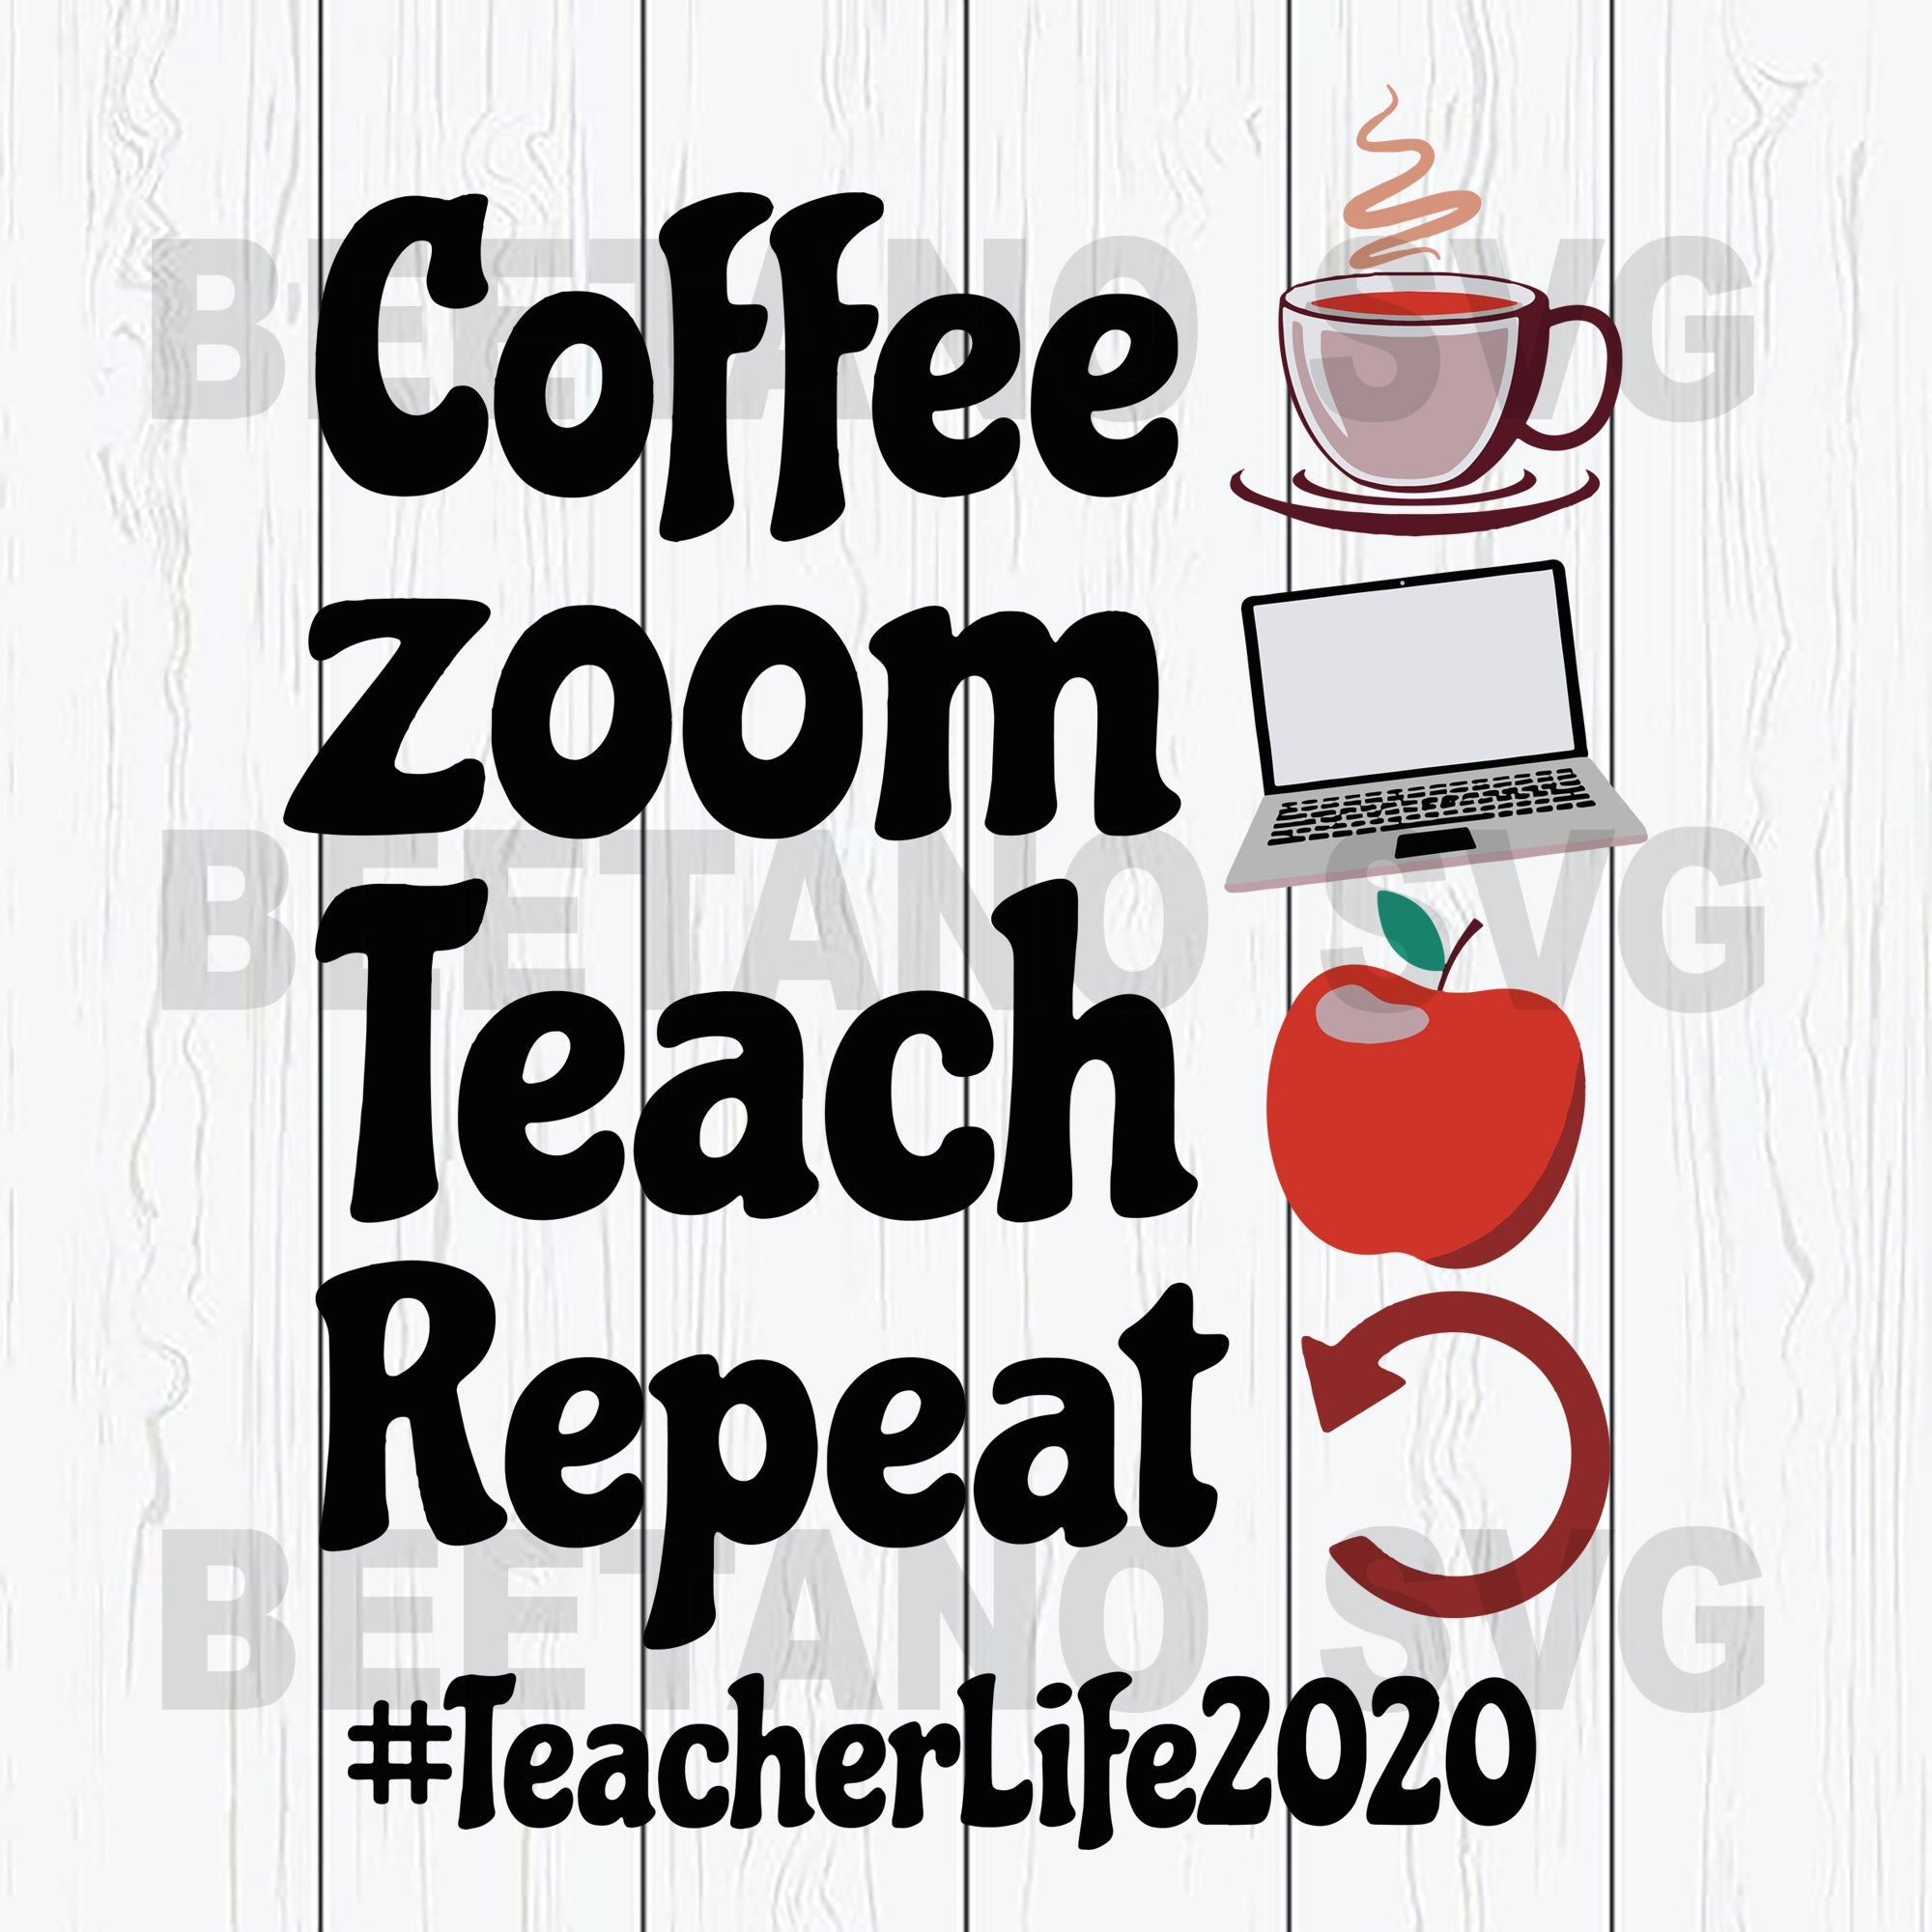 Coffee Zoom Teach Repeat Teacher Life 2020